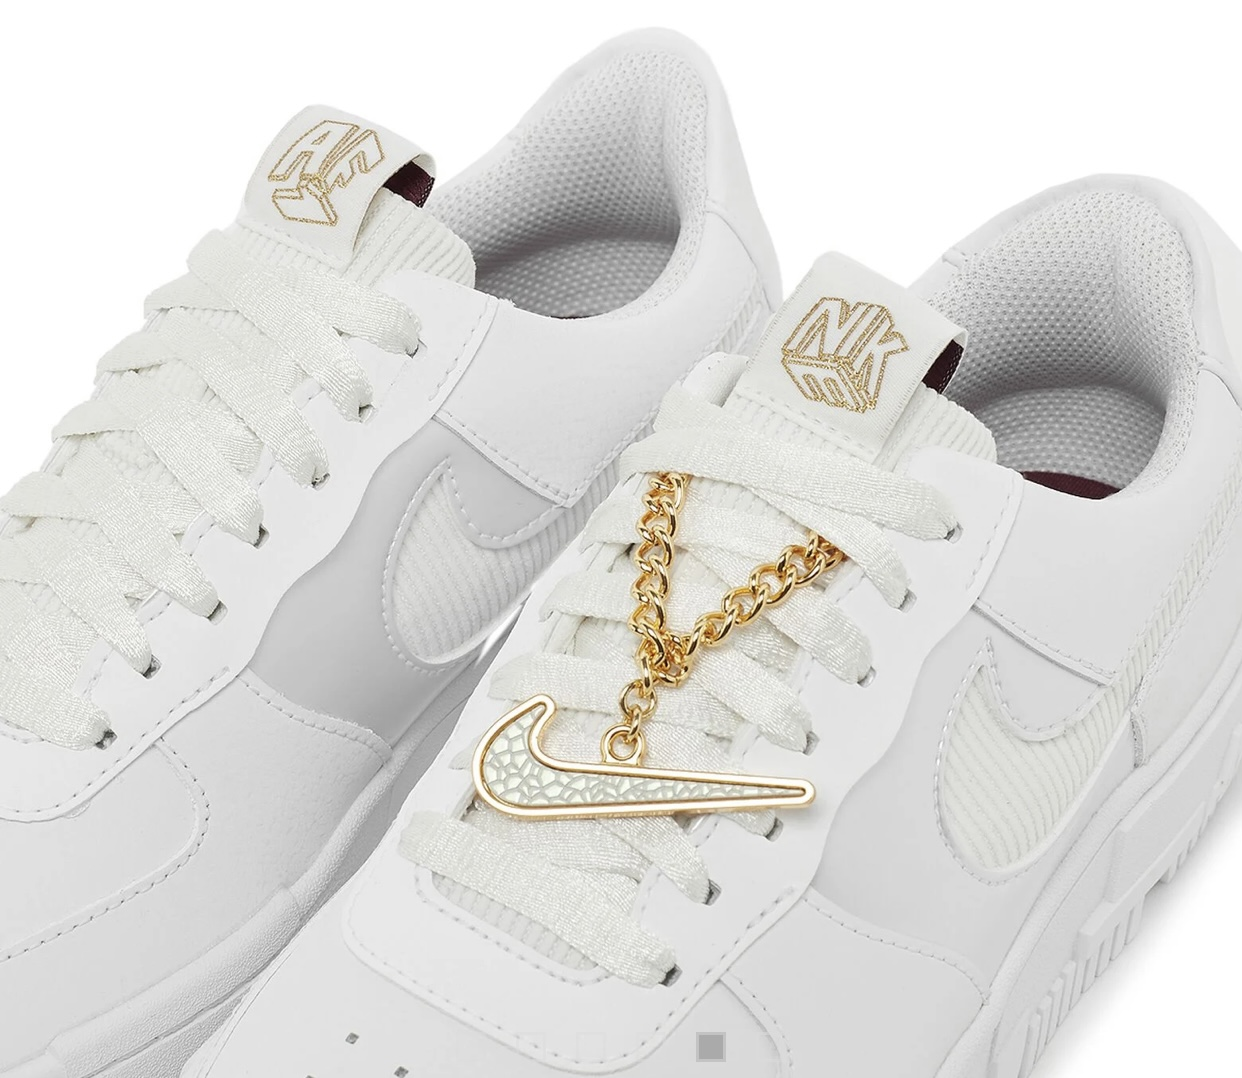 Nike Air Force 1 Pixel Grey Gold Chain - Get In My Shoes